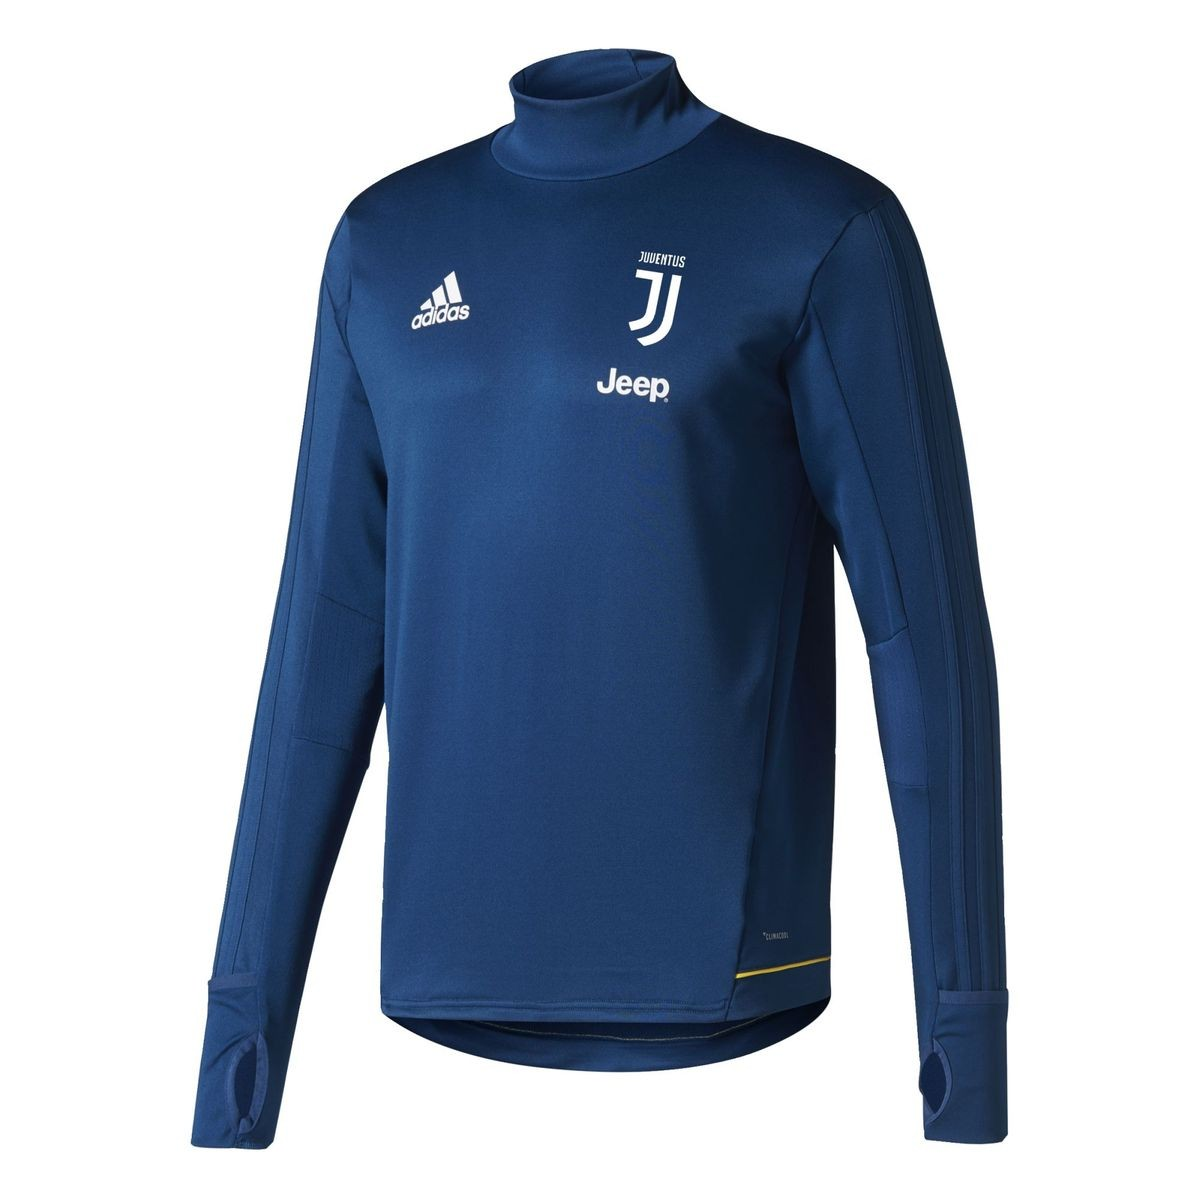 Football Bq4616 In Maillot 2019Products De Juventus wkn0OP